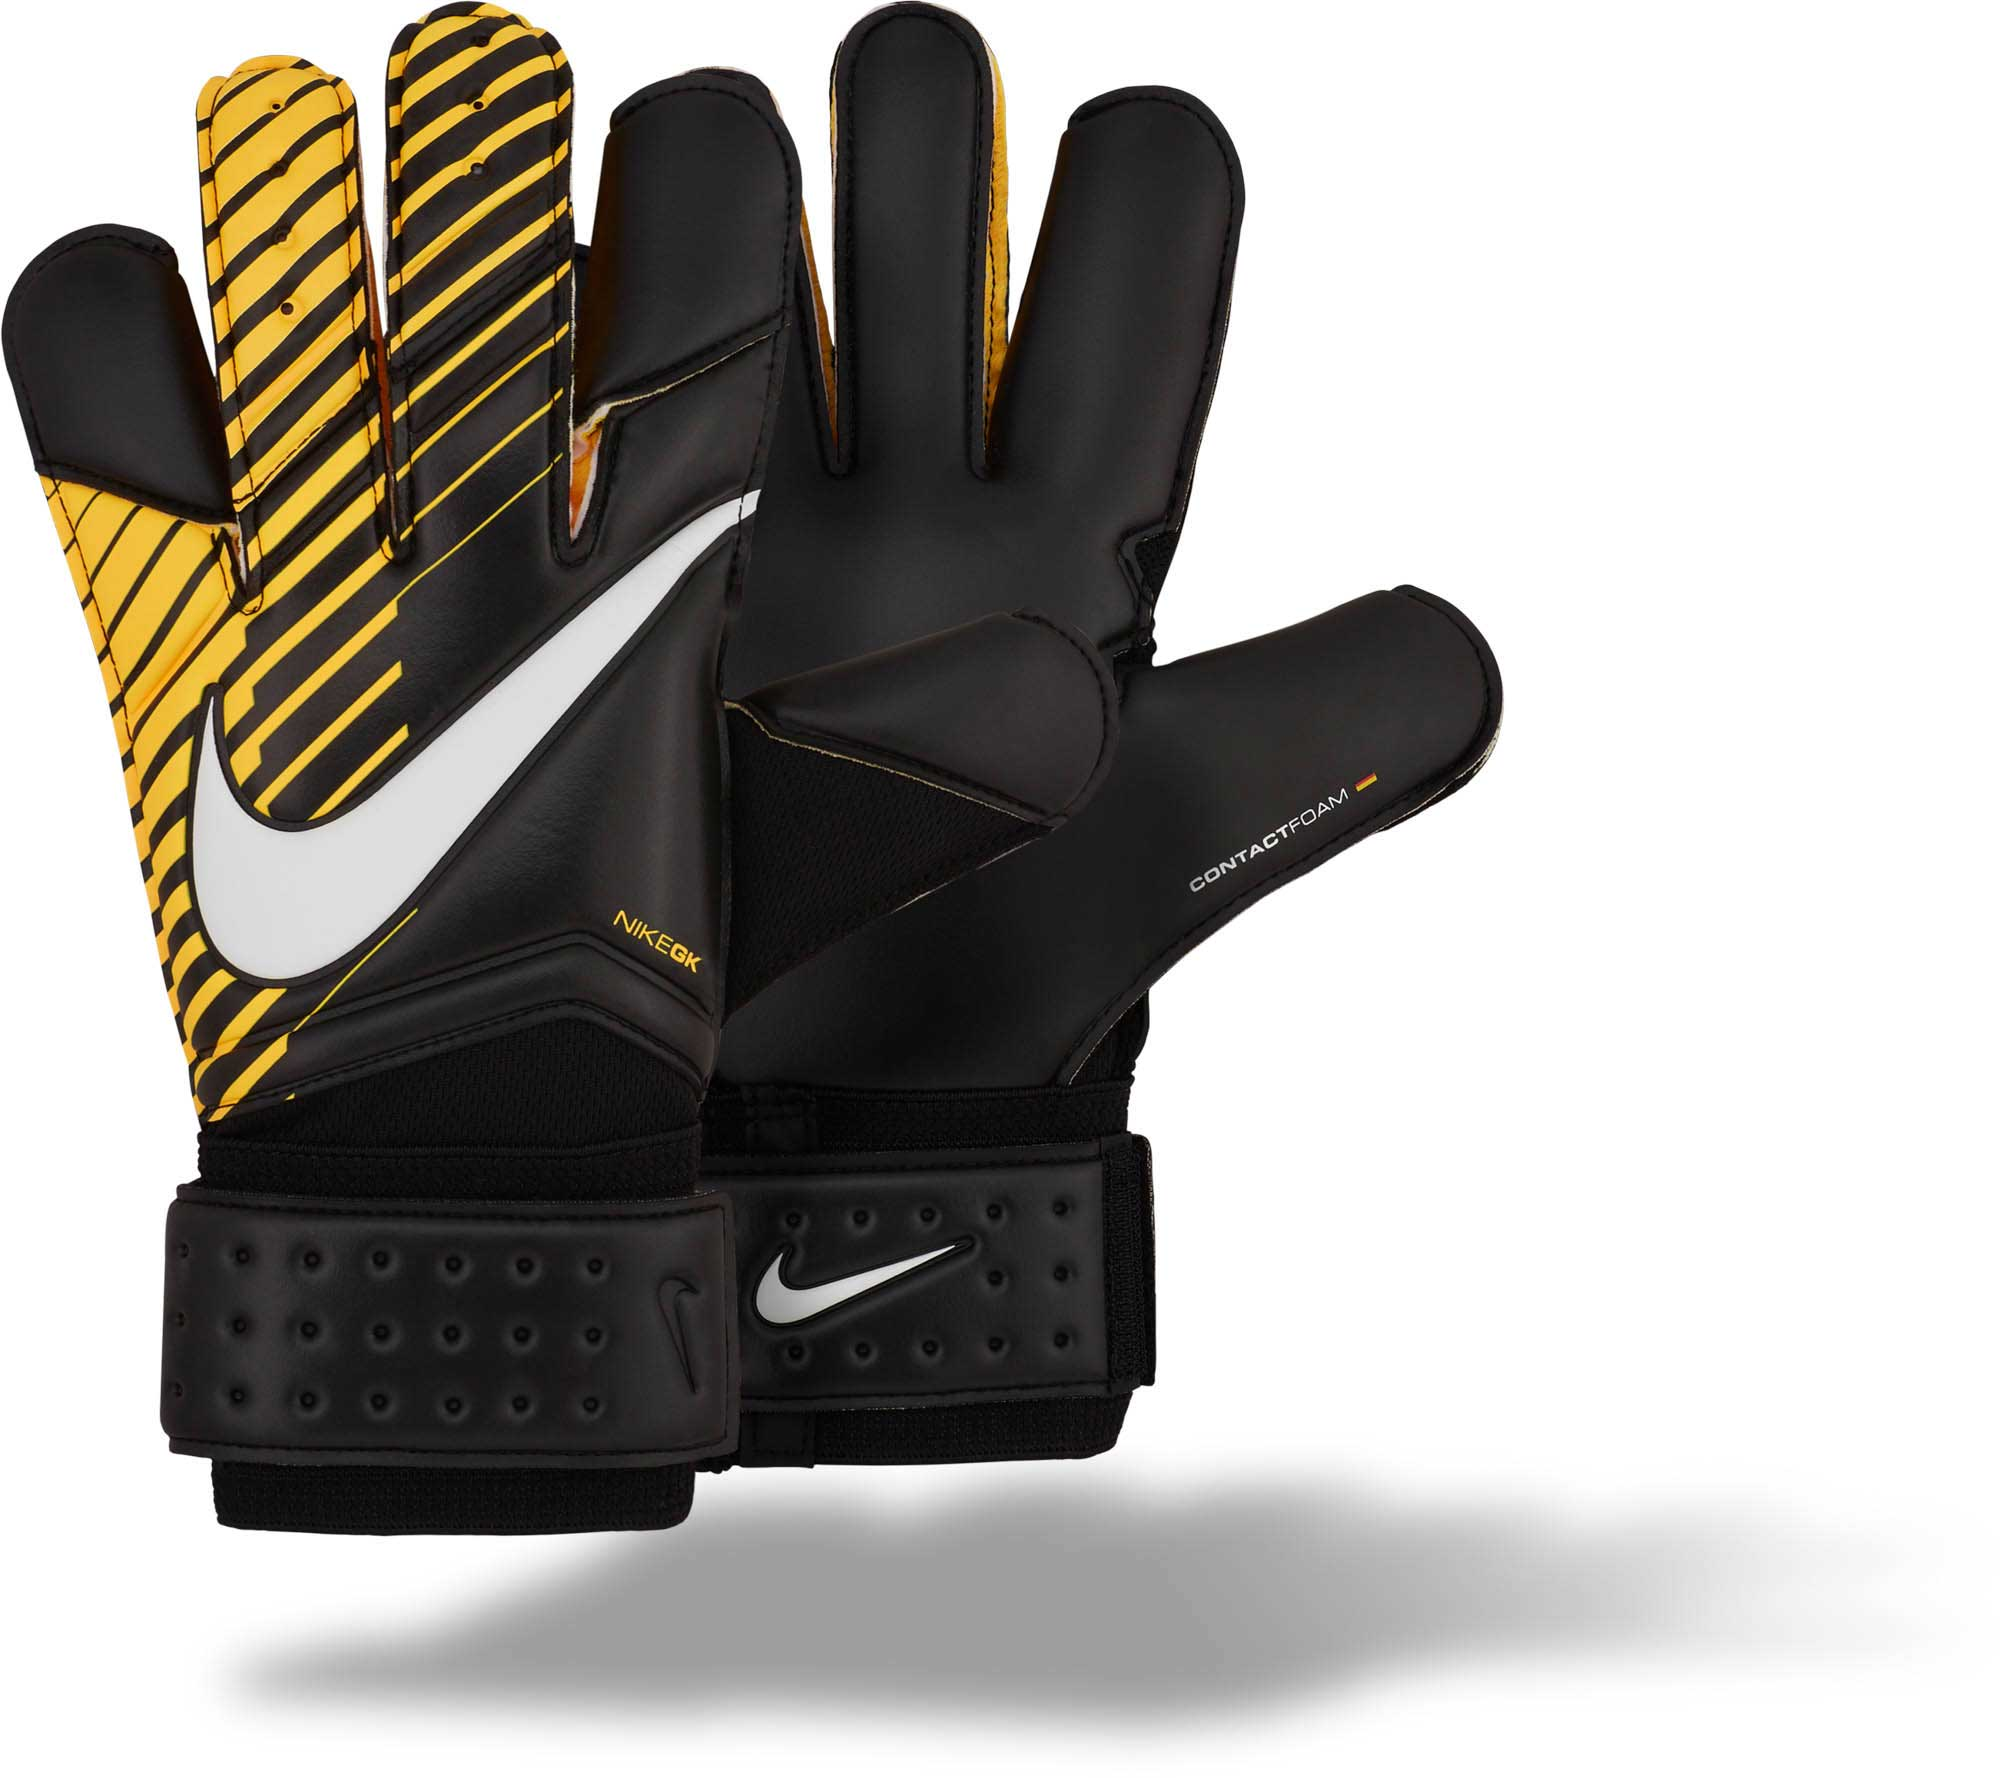 Nike Soccer Gloves: Nike Vapor Grip3 Goalkeeper Gloves